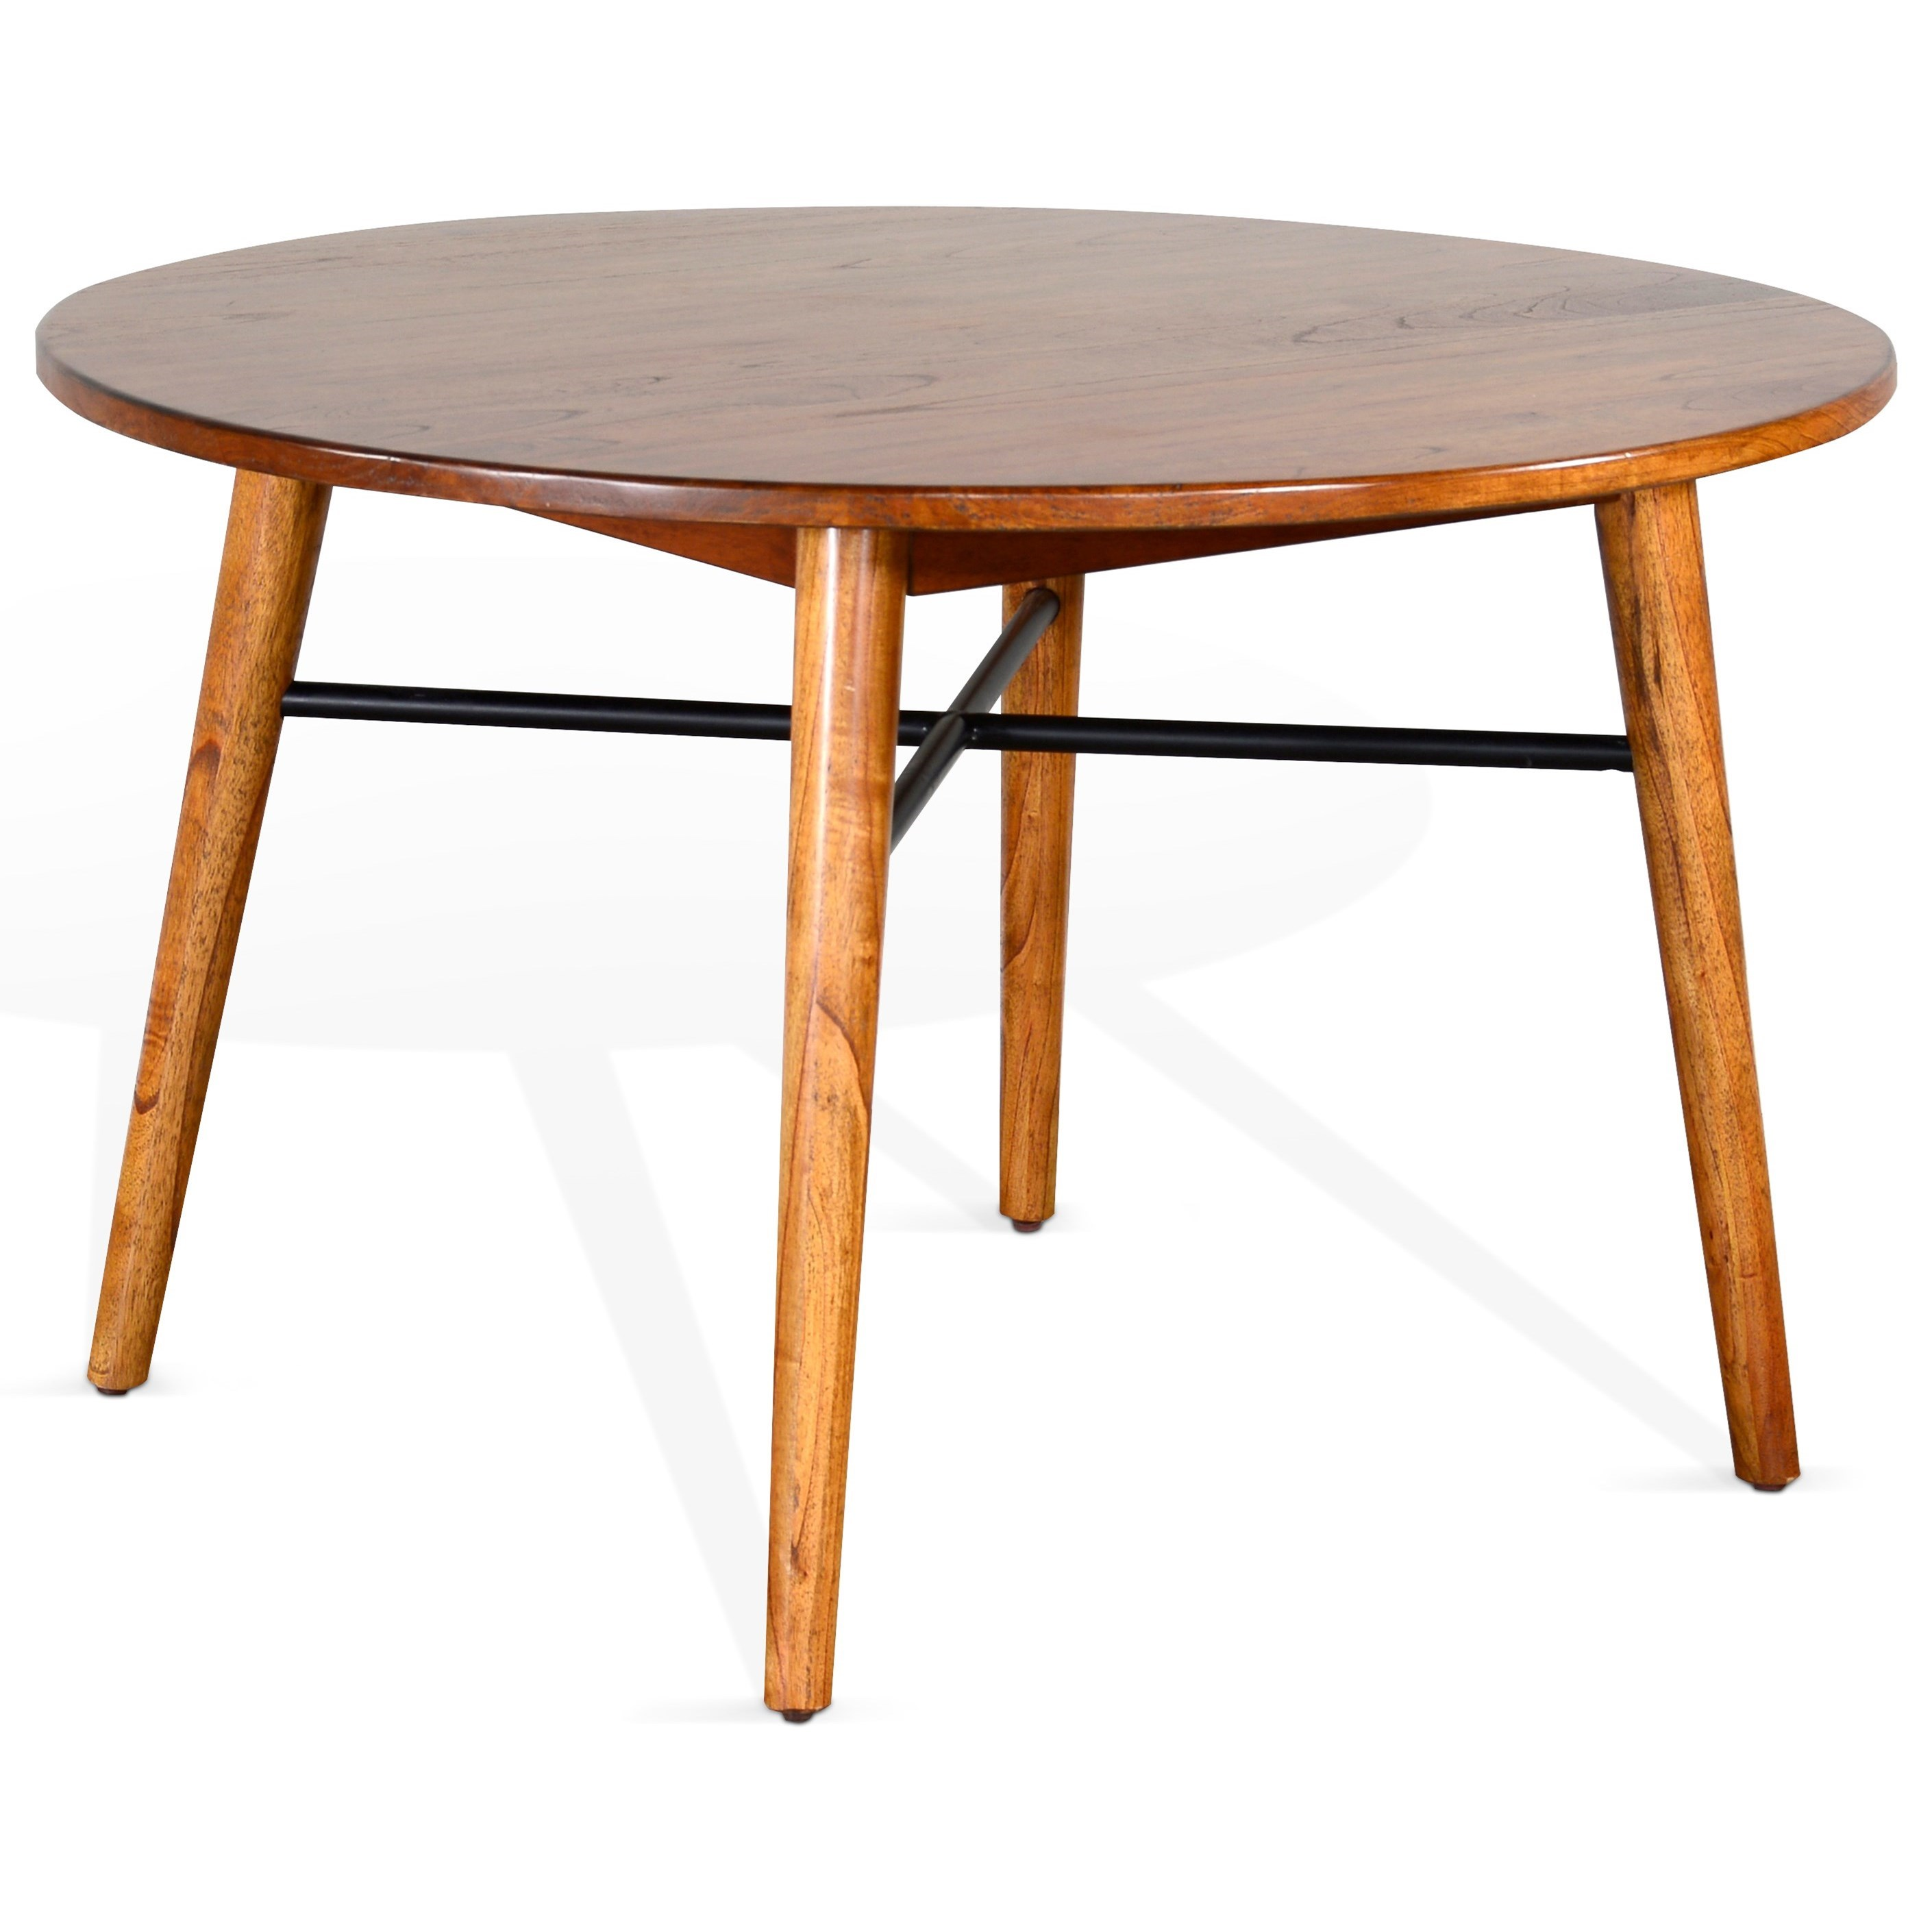 American Modern Round Table by Sunny Designs at Sparks HomeStore